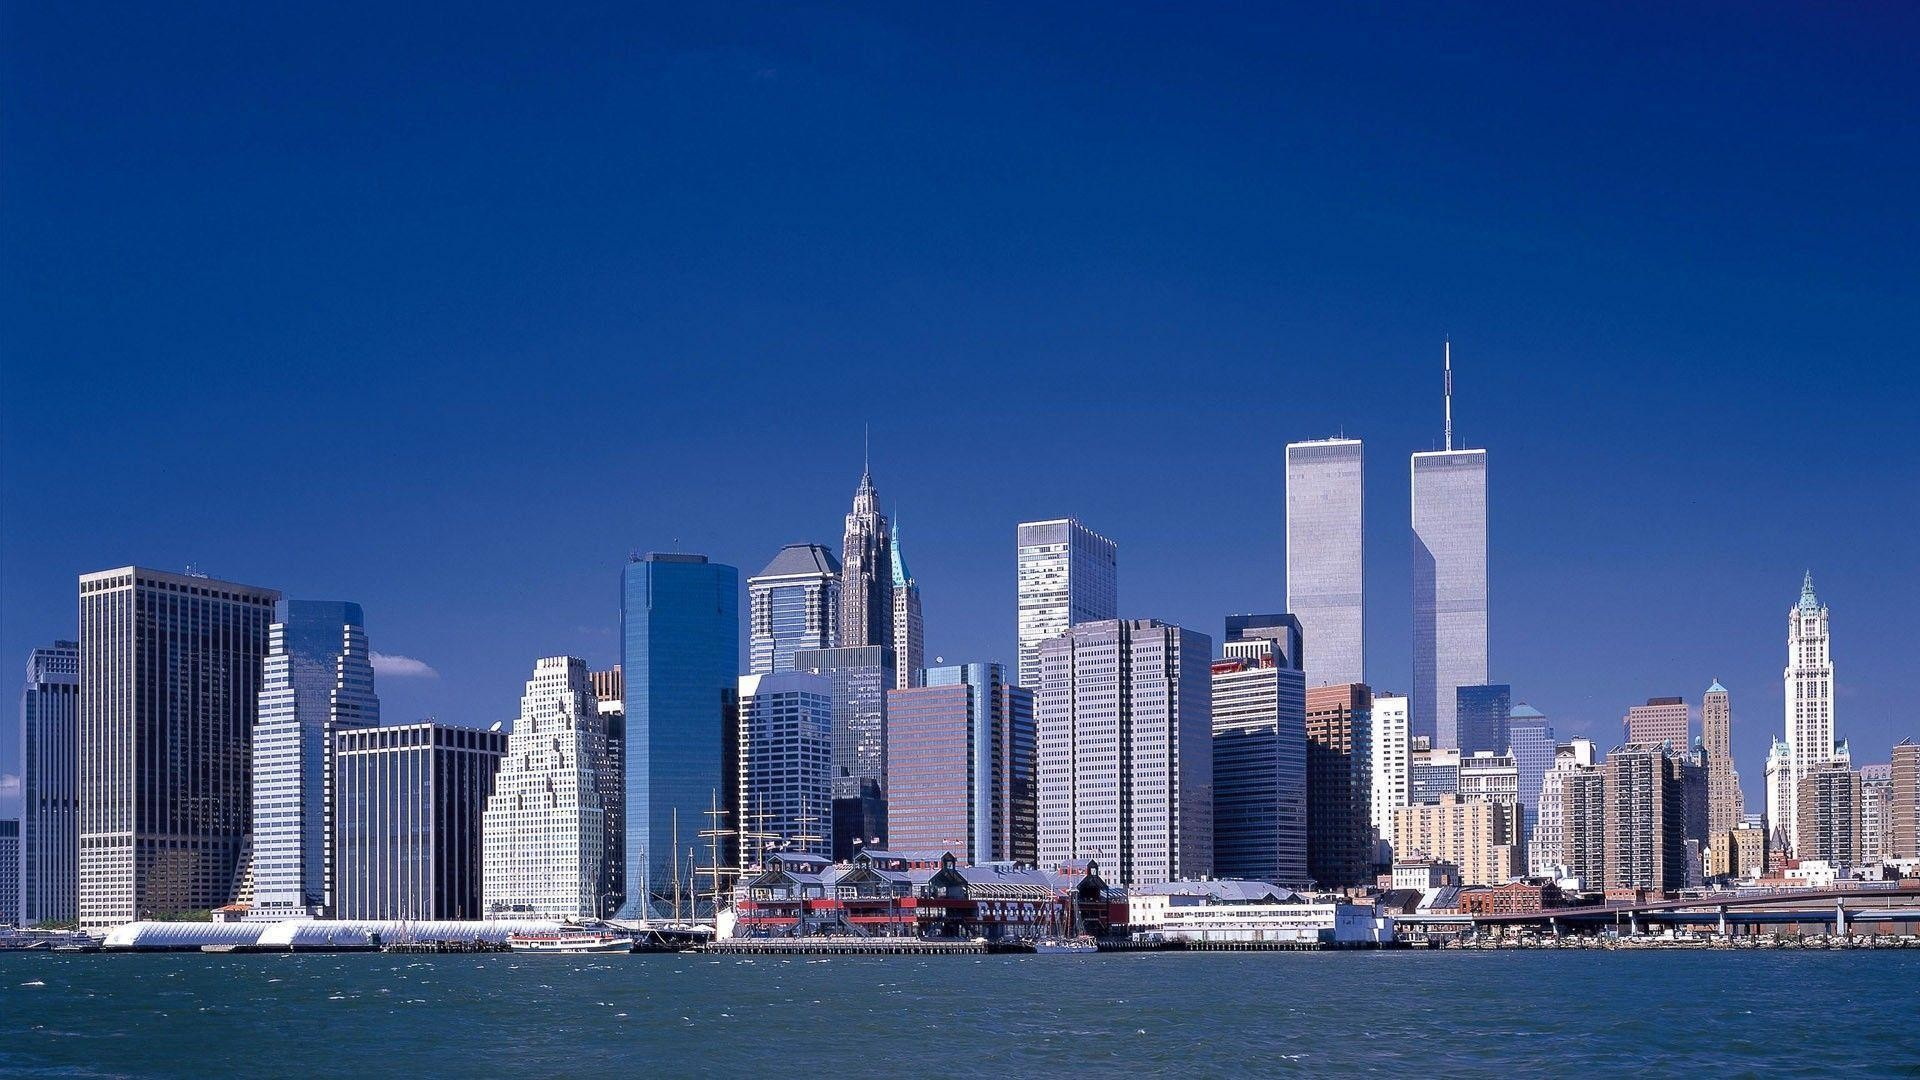 Res: 1920x1080, Wallpapers of the twin towers in New York Picture,New York hd .